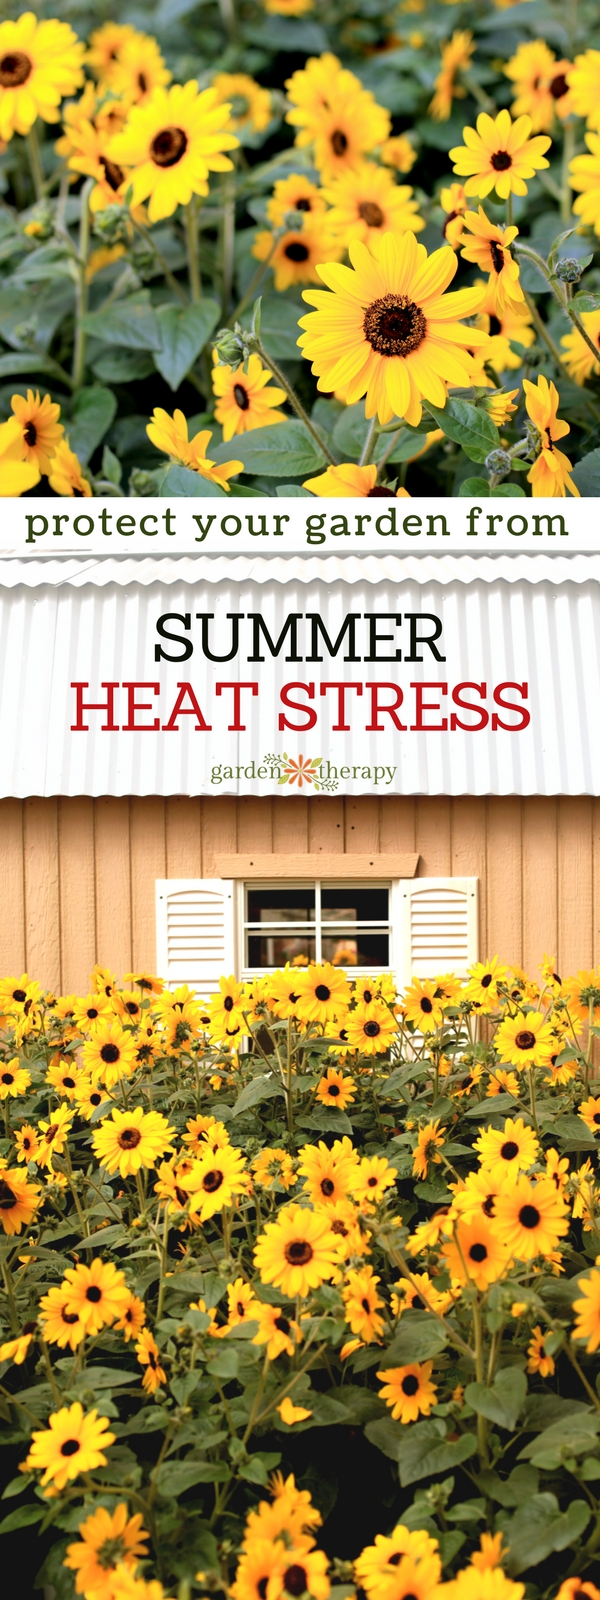 How to Protect Your Summer Garden from Heat Stress